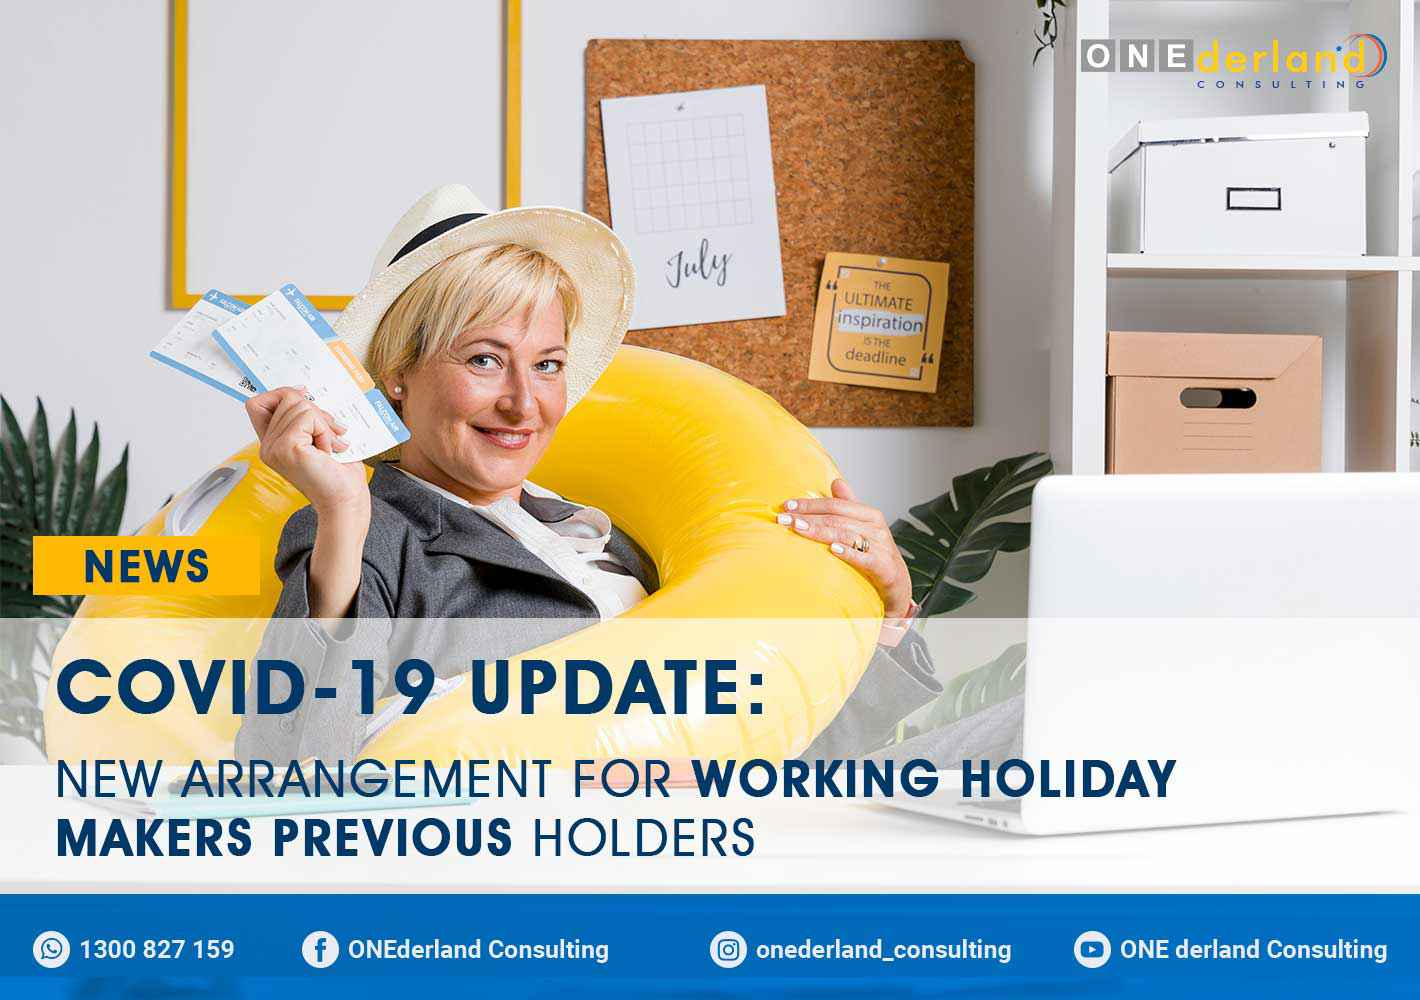 COVID-19 Update New Visa Arrangement for Working Holiday Makers Previous Holders